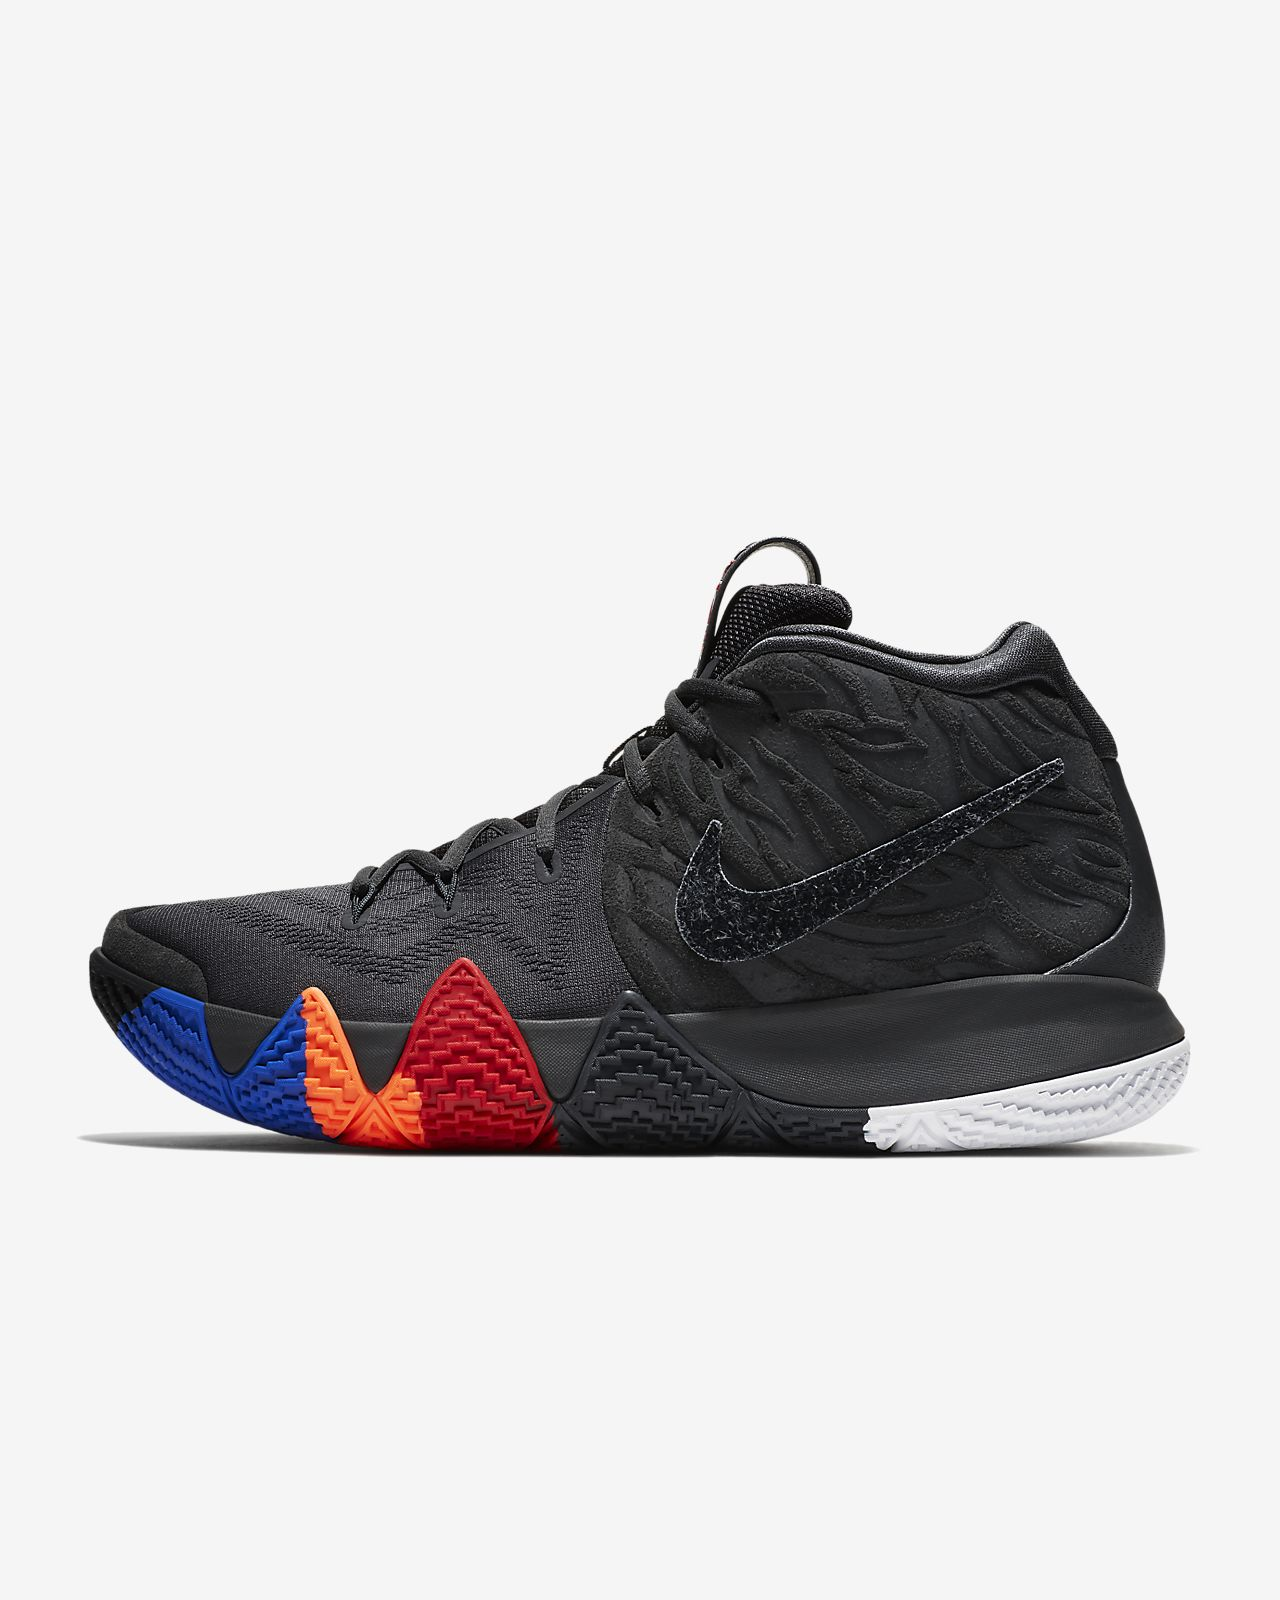 best cheap 29144 b78e2 Low Resolution Kyrie 4 Basketball Shoe Kyrie 4 Basketball Shoe